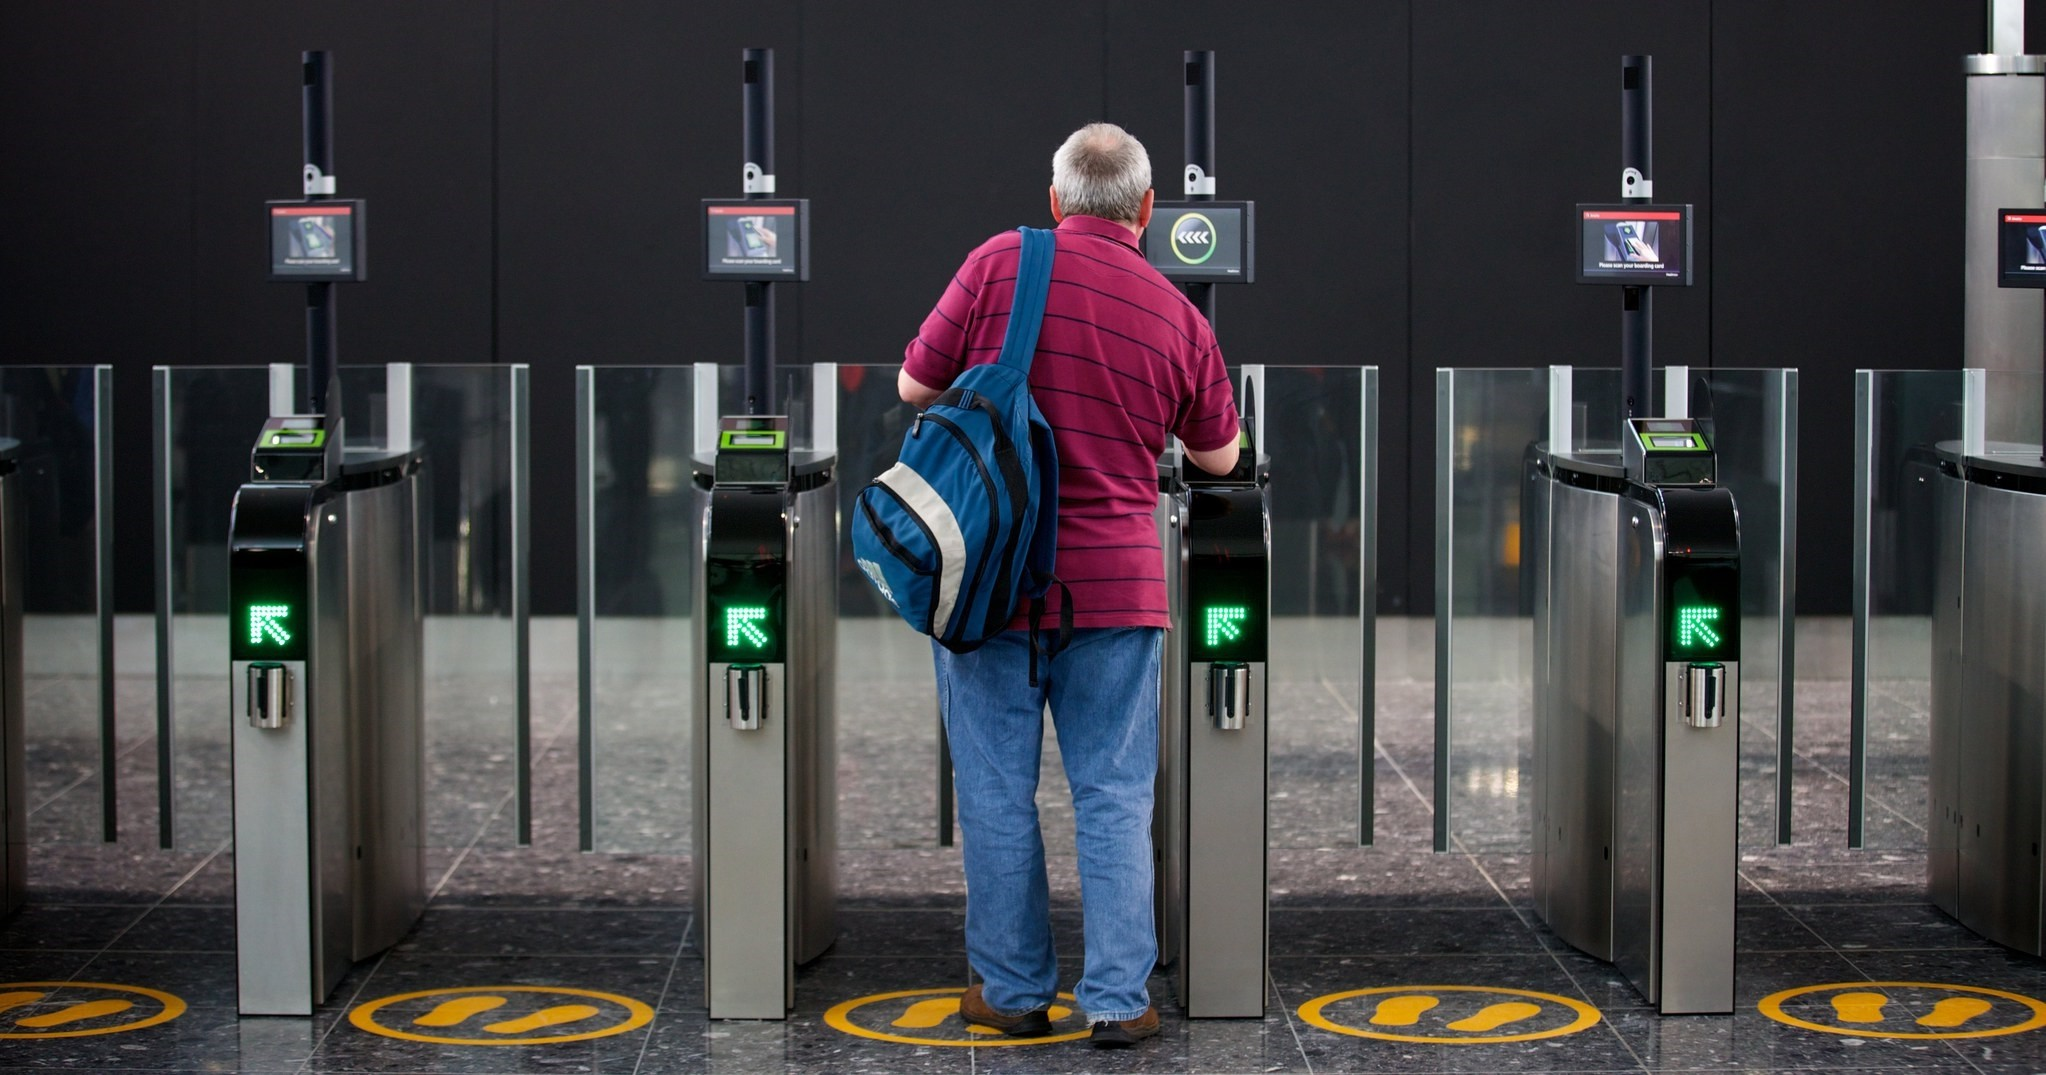 A passenger scans his boarding card in the new Terminal 2 at Heathrow Airport in London, Britain, 04 June 2014. (EPA Photo)